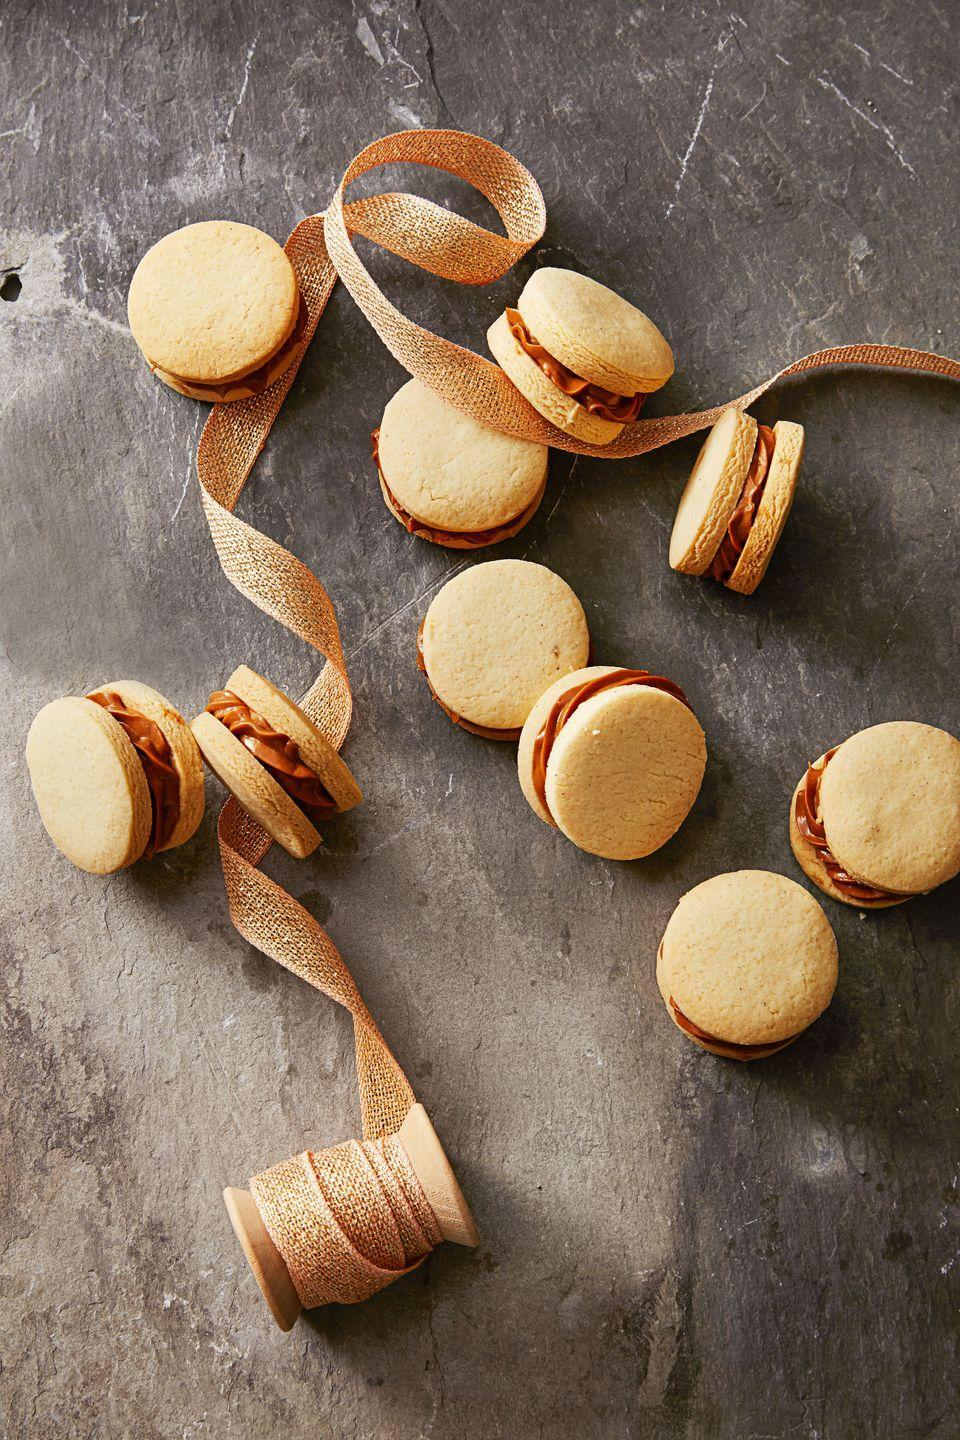 """<p>Dulce de leche is like caramel made from sweetened milk, so it's pretty much perfect on its own. Sandwich it between two buttery cookies and presto! You won the cookie swap.</p><p><em><a href=""""https://www.goodhousekeeping.com/food-recipes/dessert/a35757/dulce-de-leche-sandwiches/"""" rel=""""nofollow noopener"""" target=""""_blank"""" data-ylk=""""slk:Get the recipe for Dulce de Leche Sandwiches »"""" class=""""link rapid-noclick-resp"""">Get the recipe for Dulce de Leche Sandwiches »</a></em></p>"""